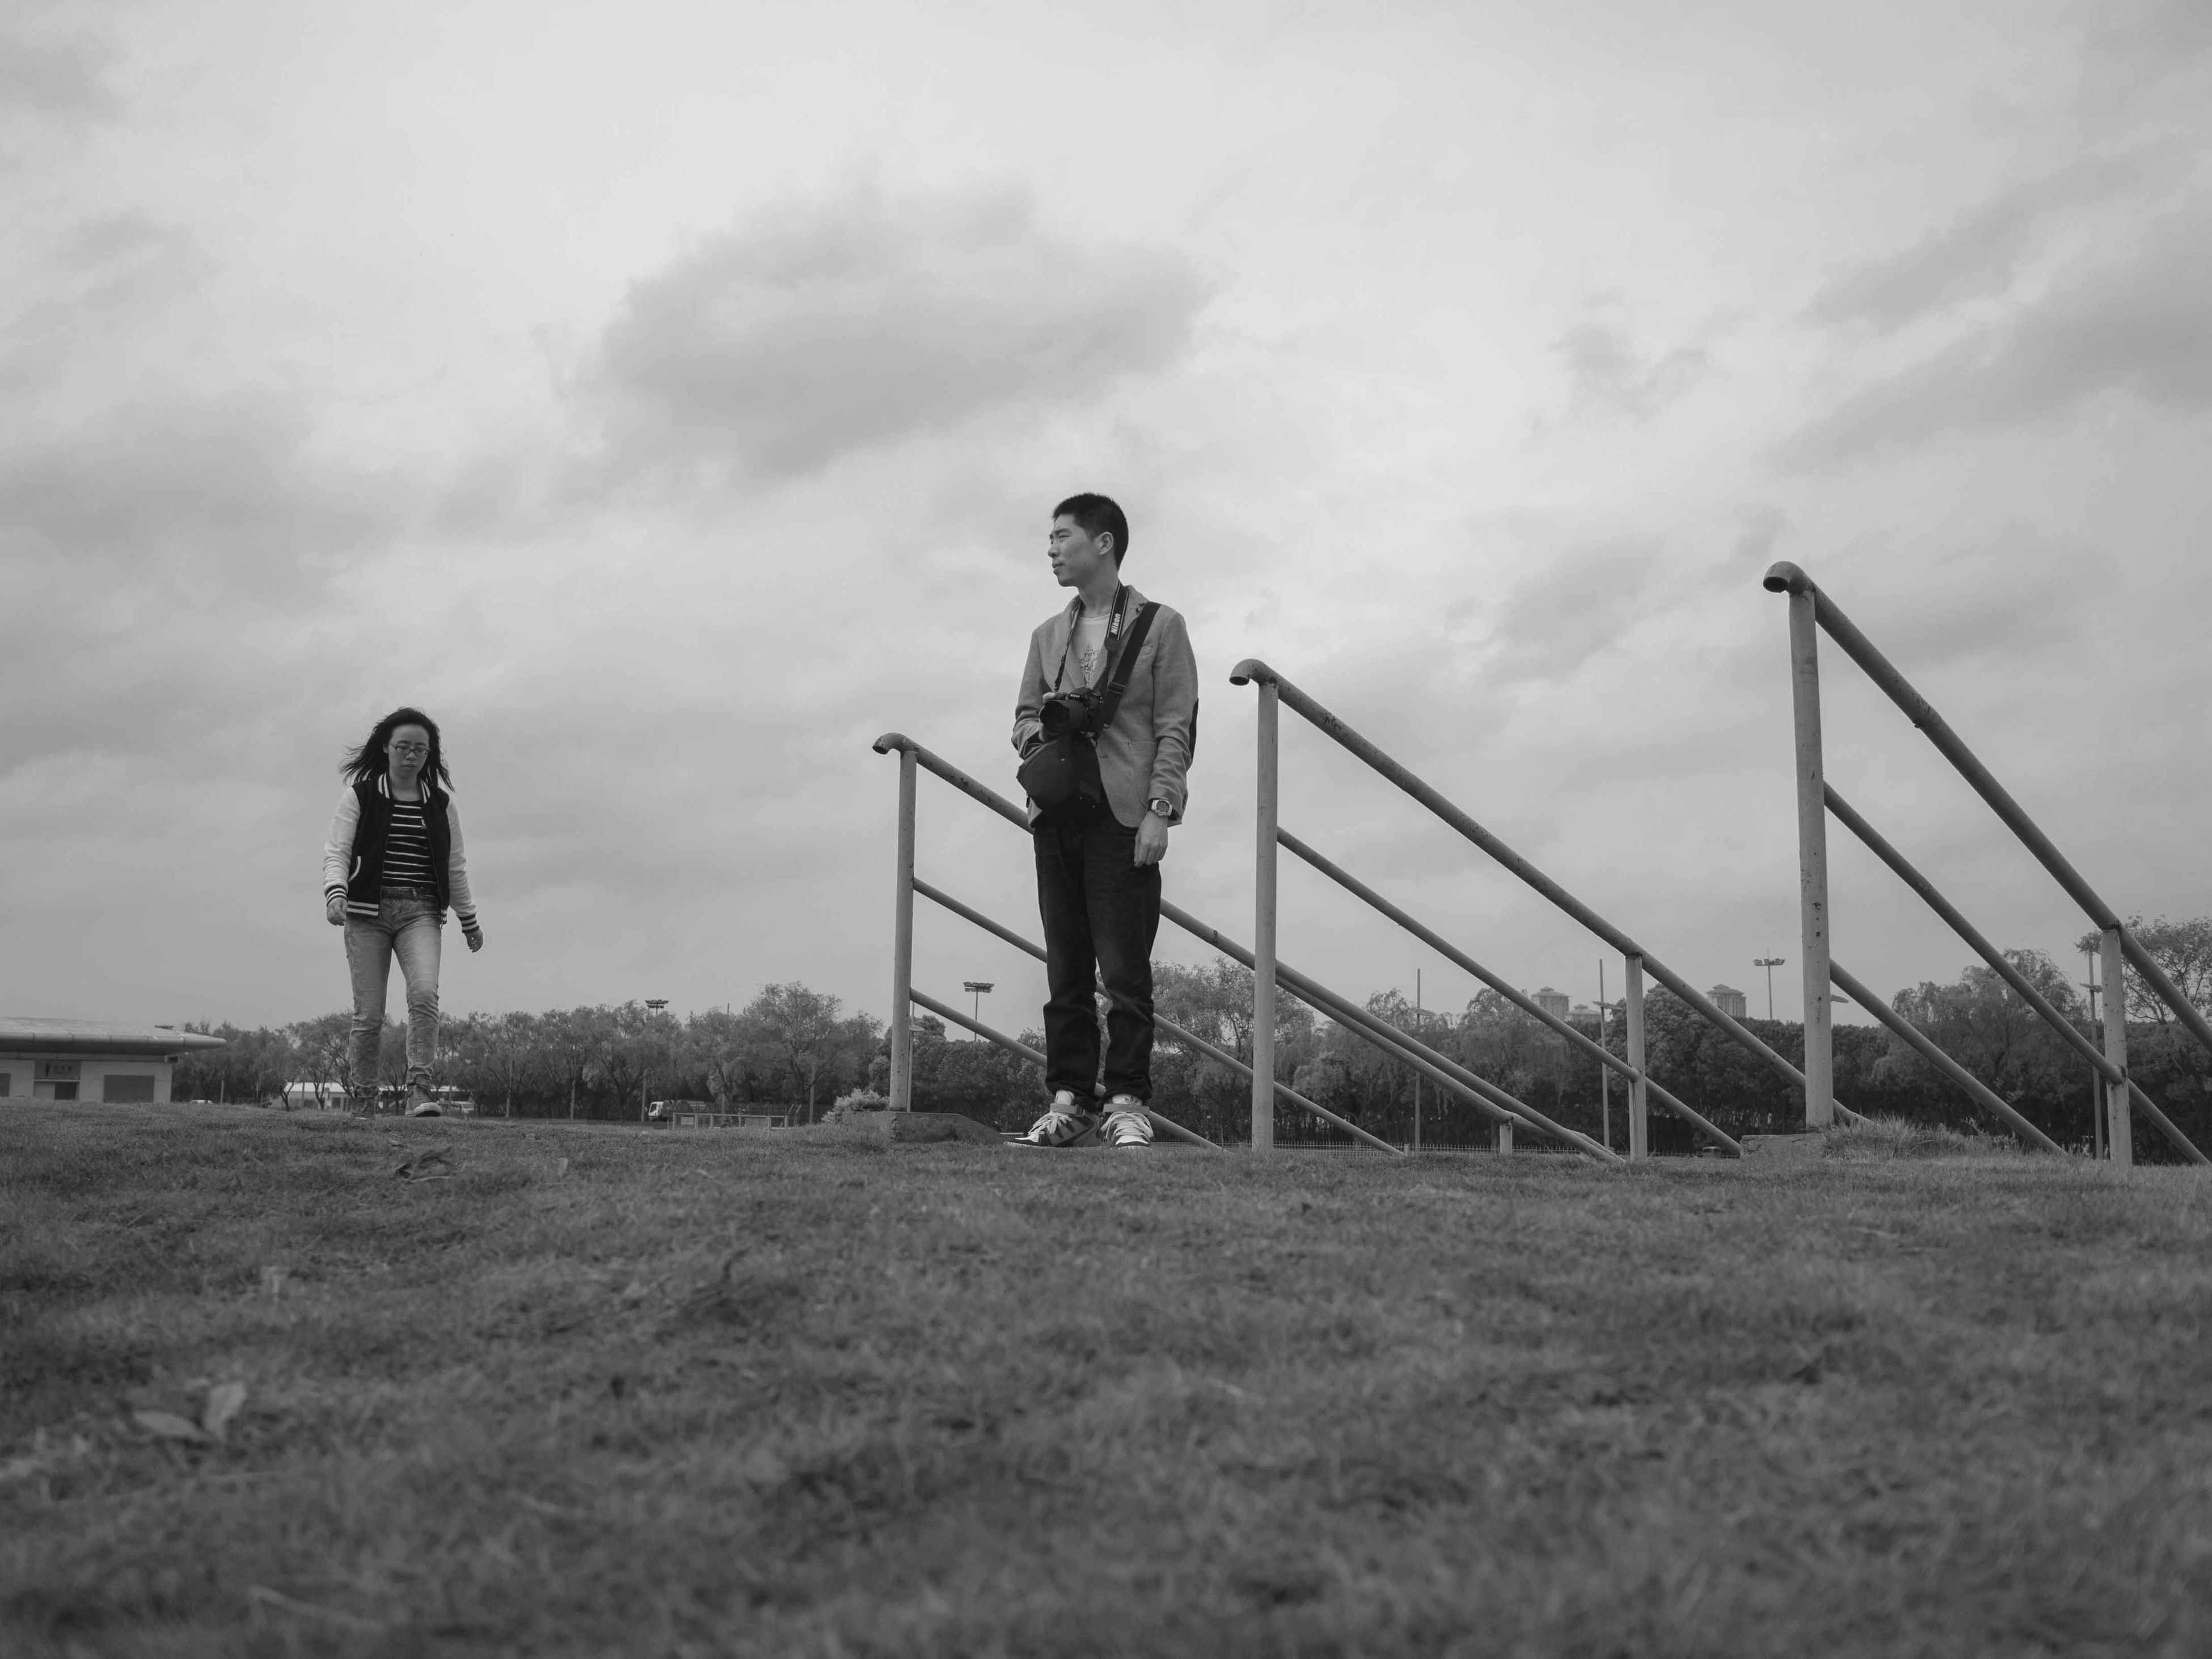 sky, full length, lifestyles, leisure activity, cloud - sky, standing, casual clothing, grass, field, childhood, cloudy, cloud, rear view, protection, day, outdoors, safety, nature